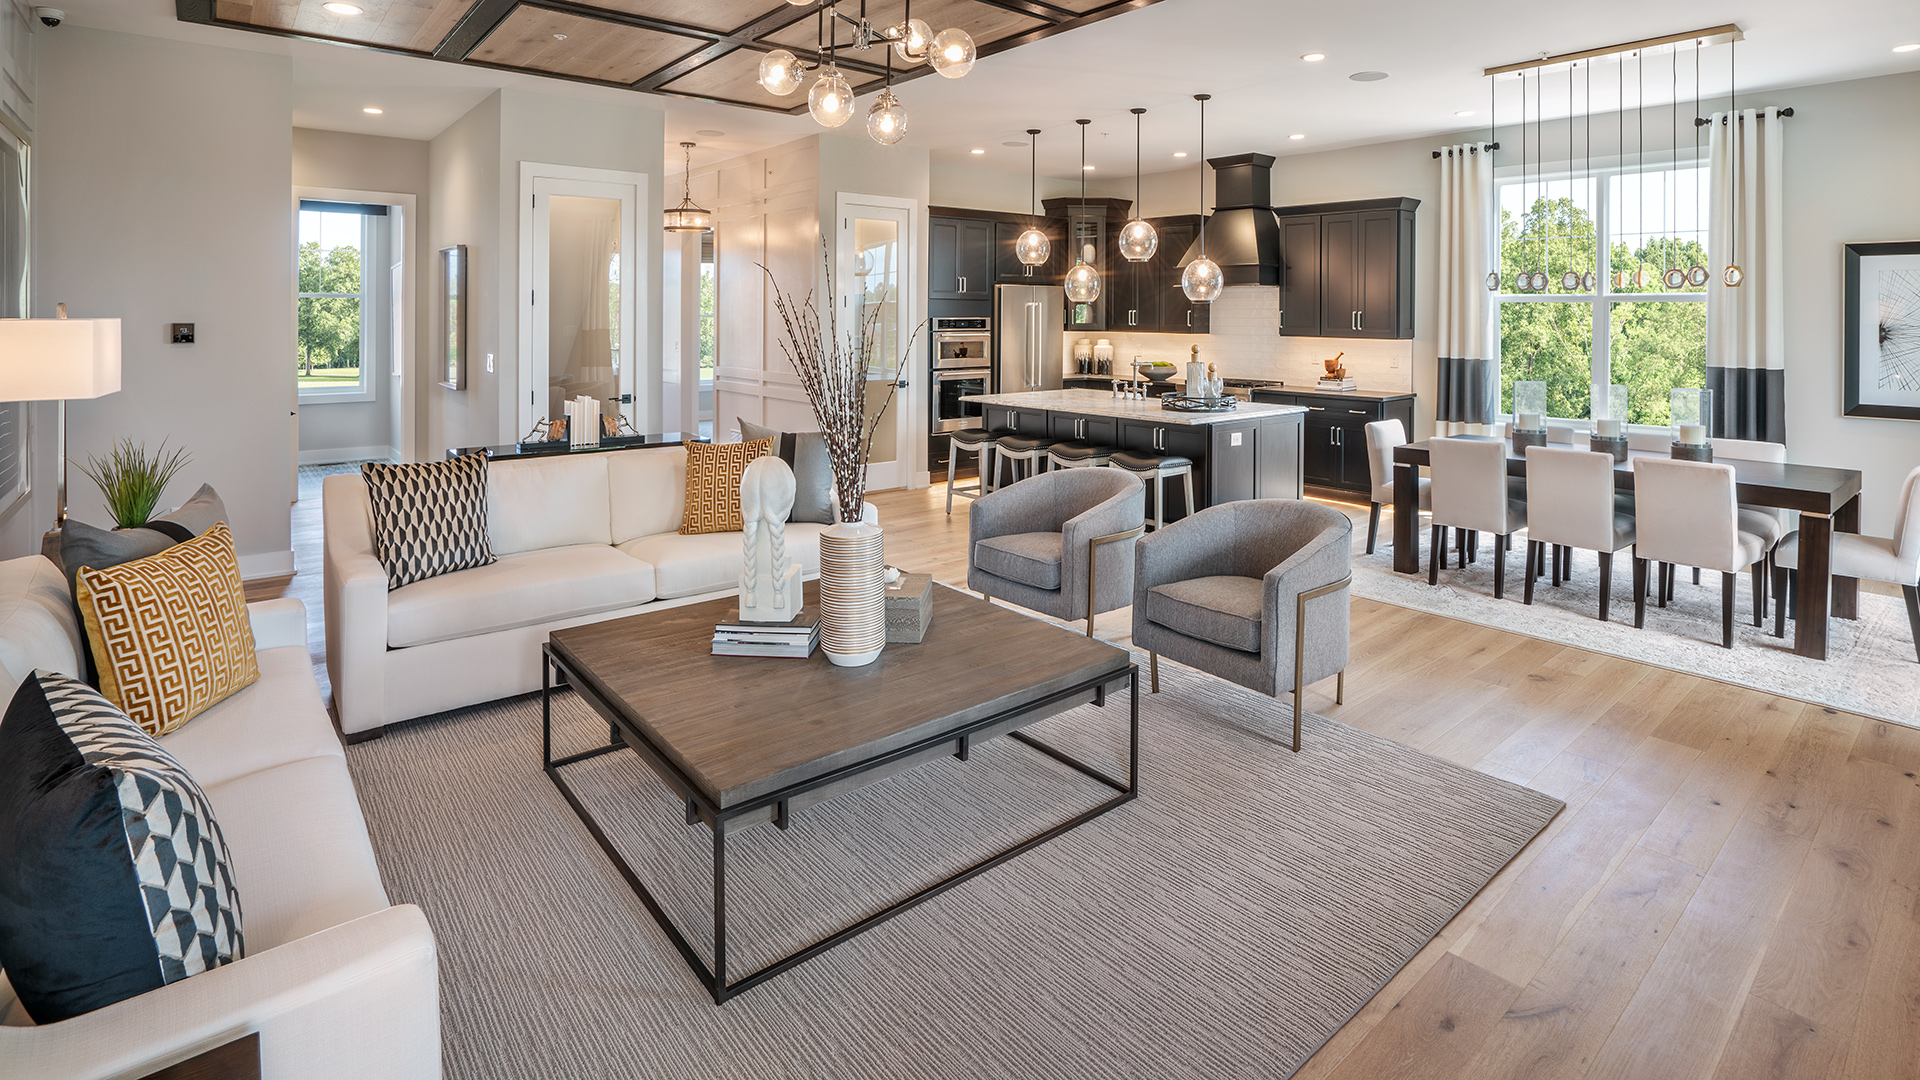 Open-concept kitchen, great room, and dining room are ideal for entertaining